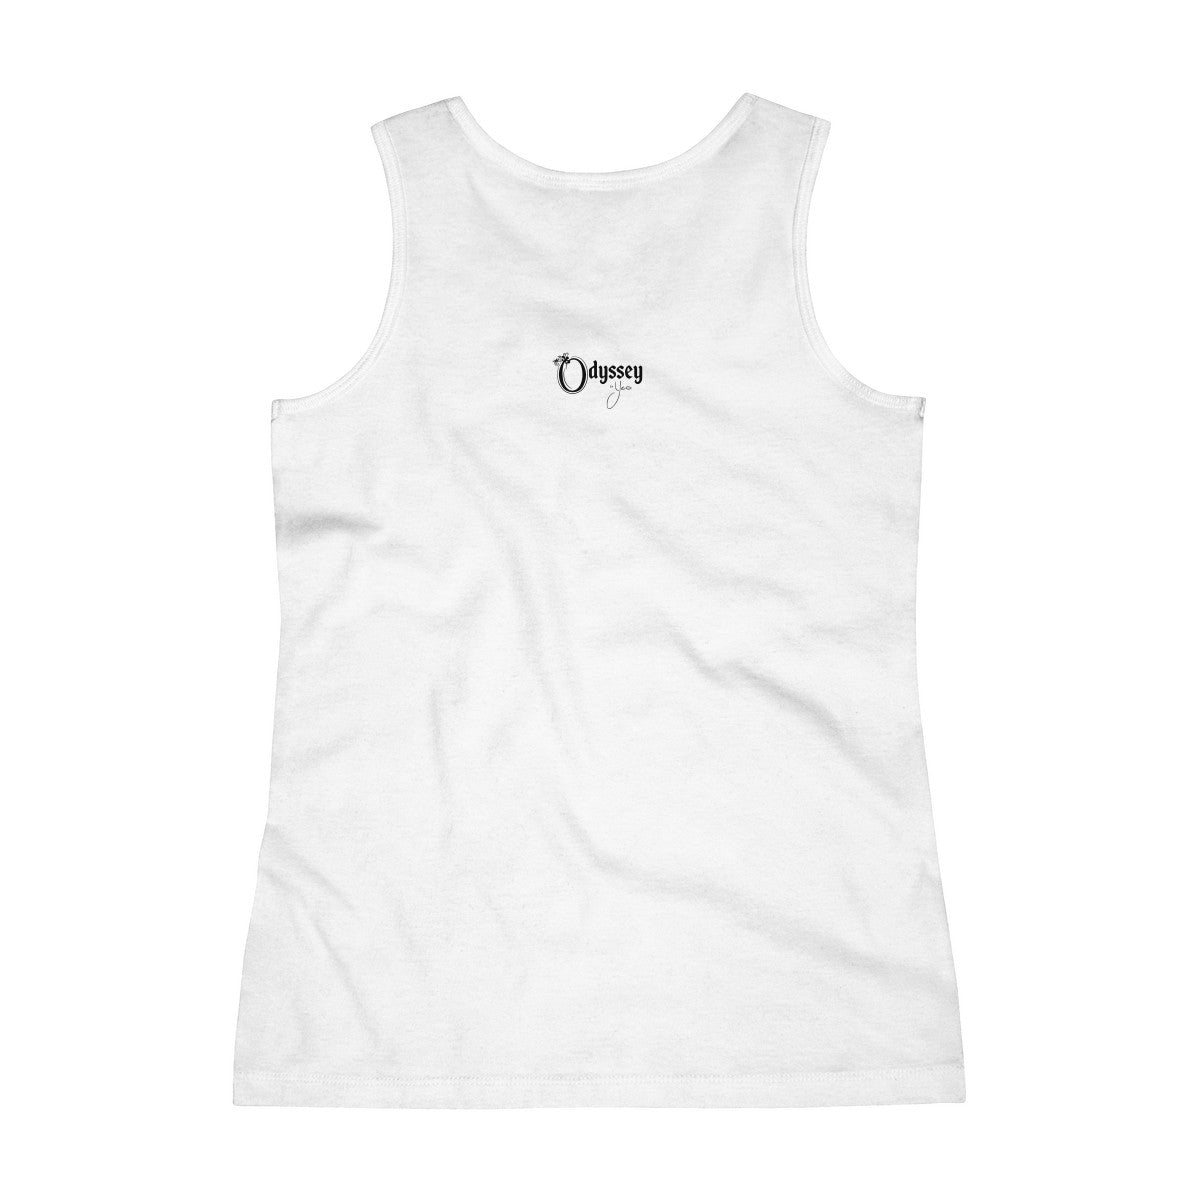 Odyssey Love Girls Tank Top -  Light